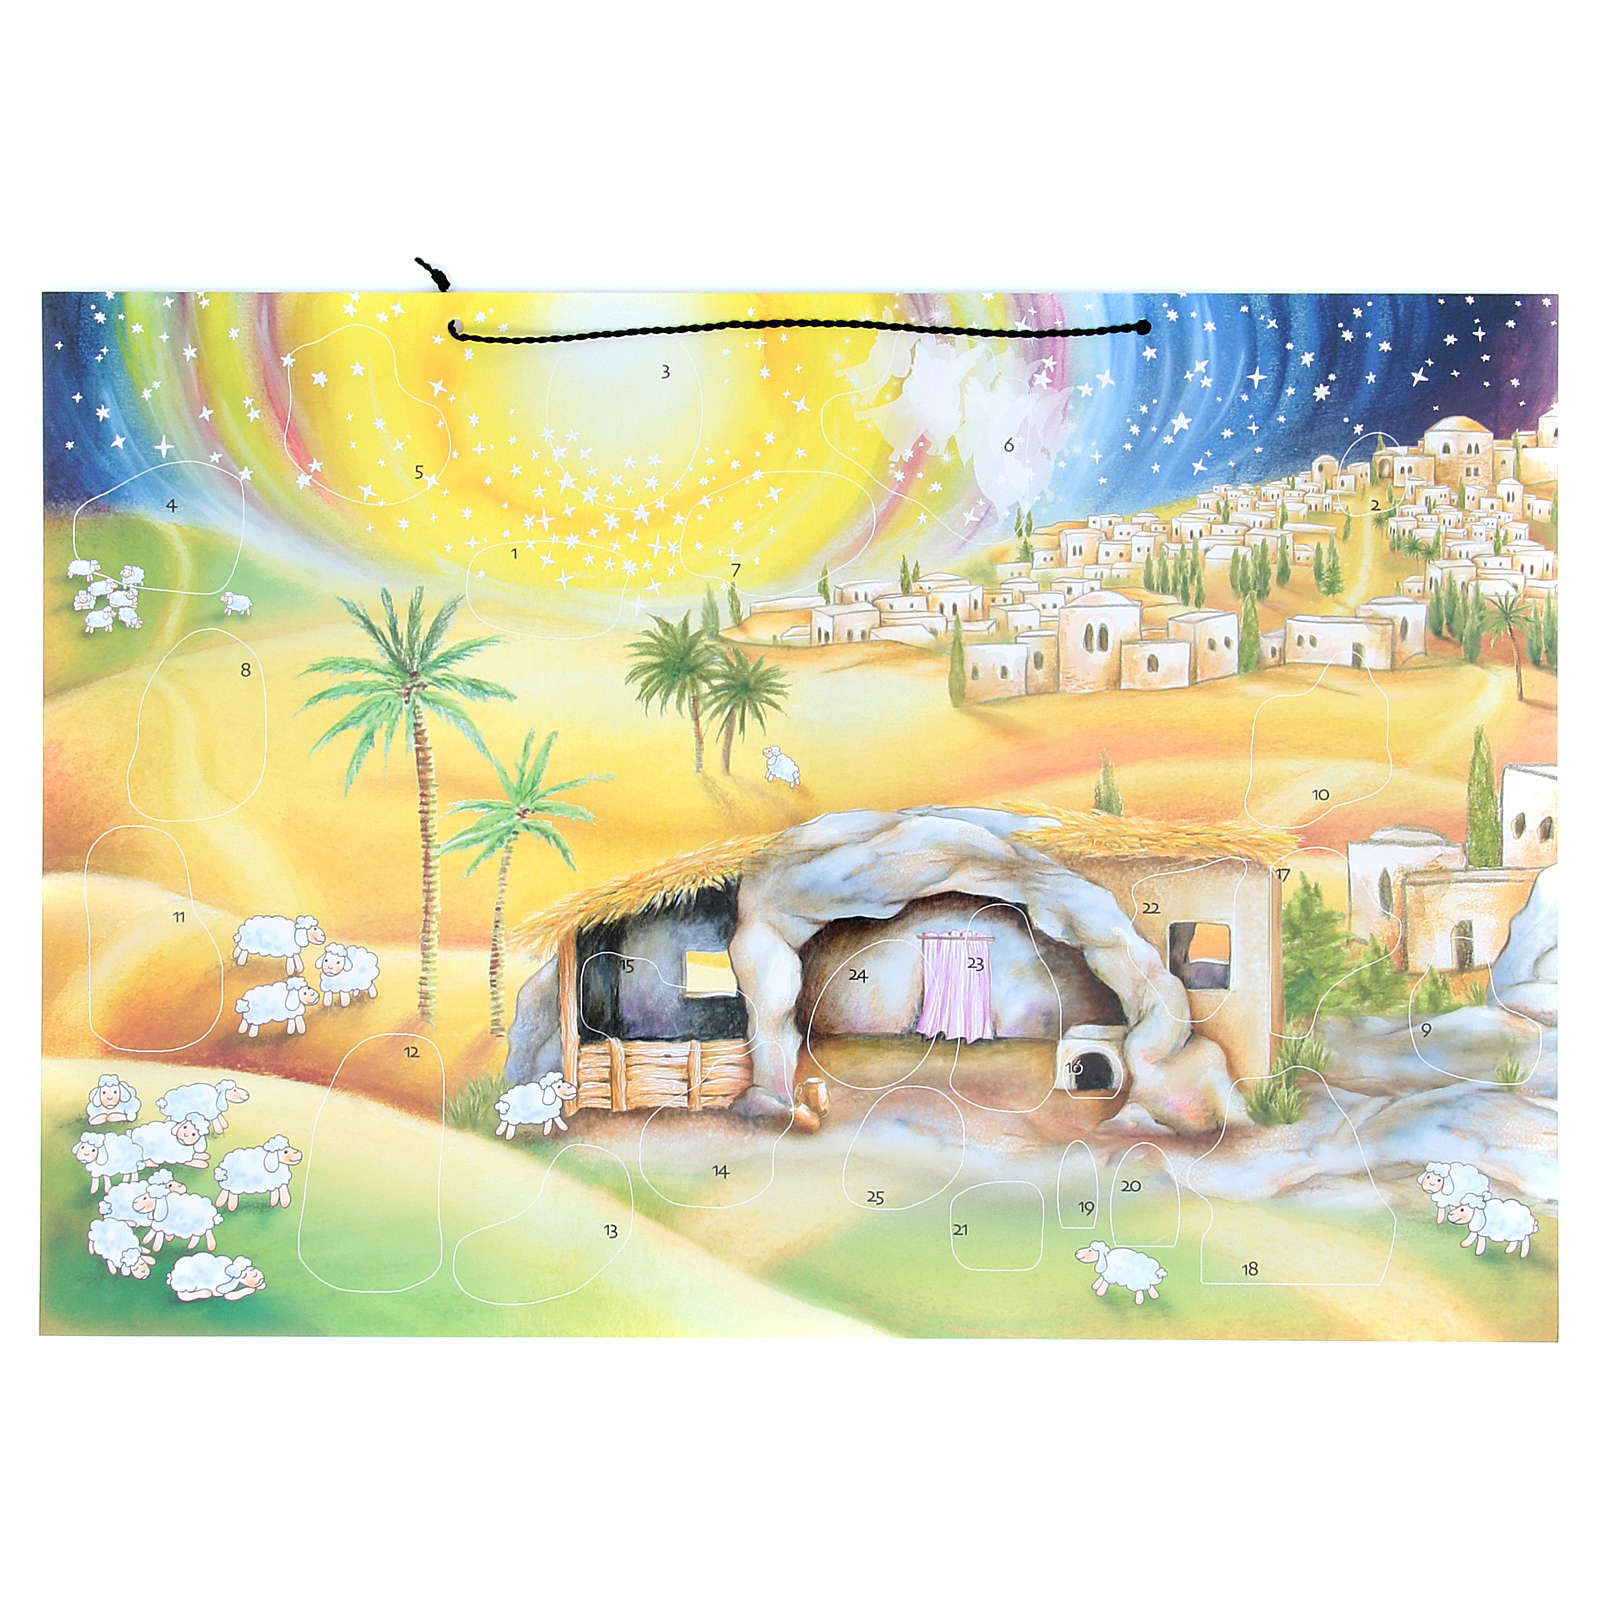 Nativity scene advent calendar with stickers 4